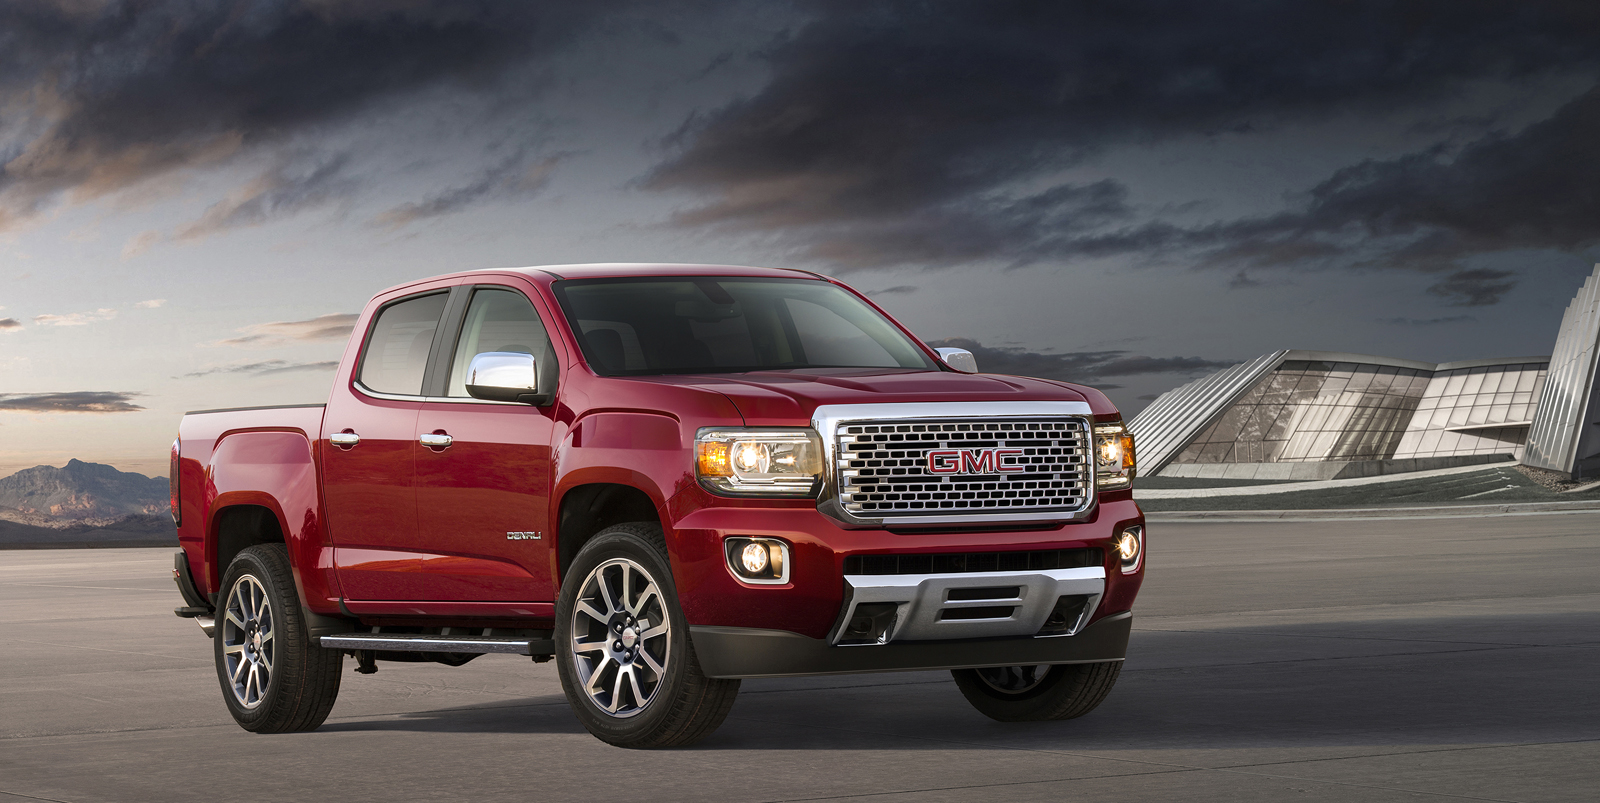 2017 Gmc Canyon Denali Puts Lux In A Small Truck